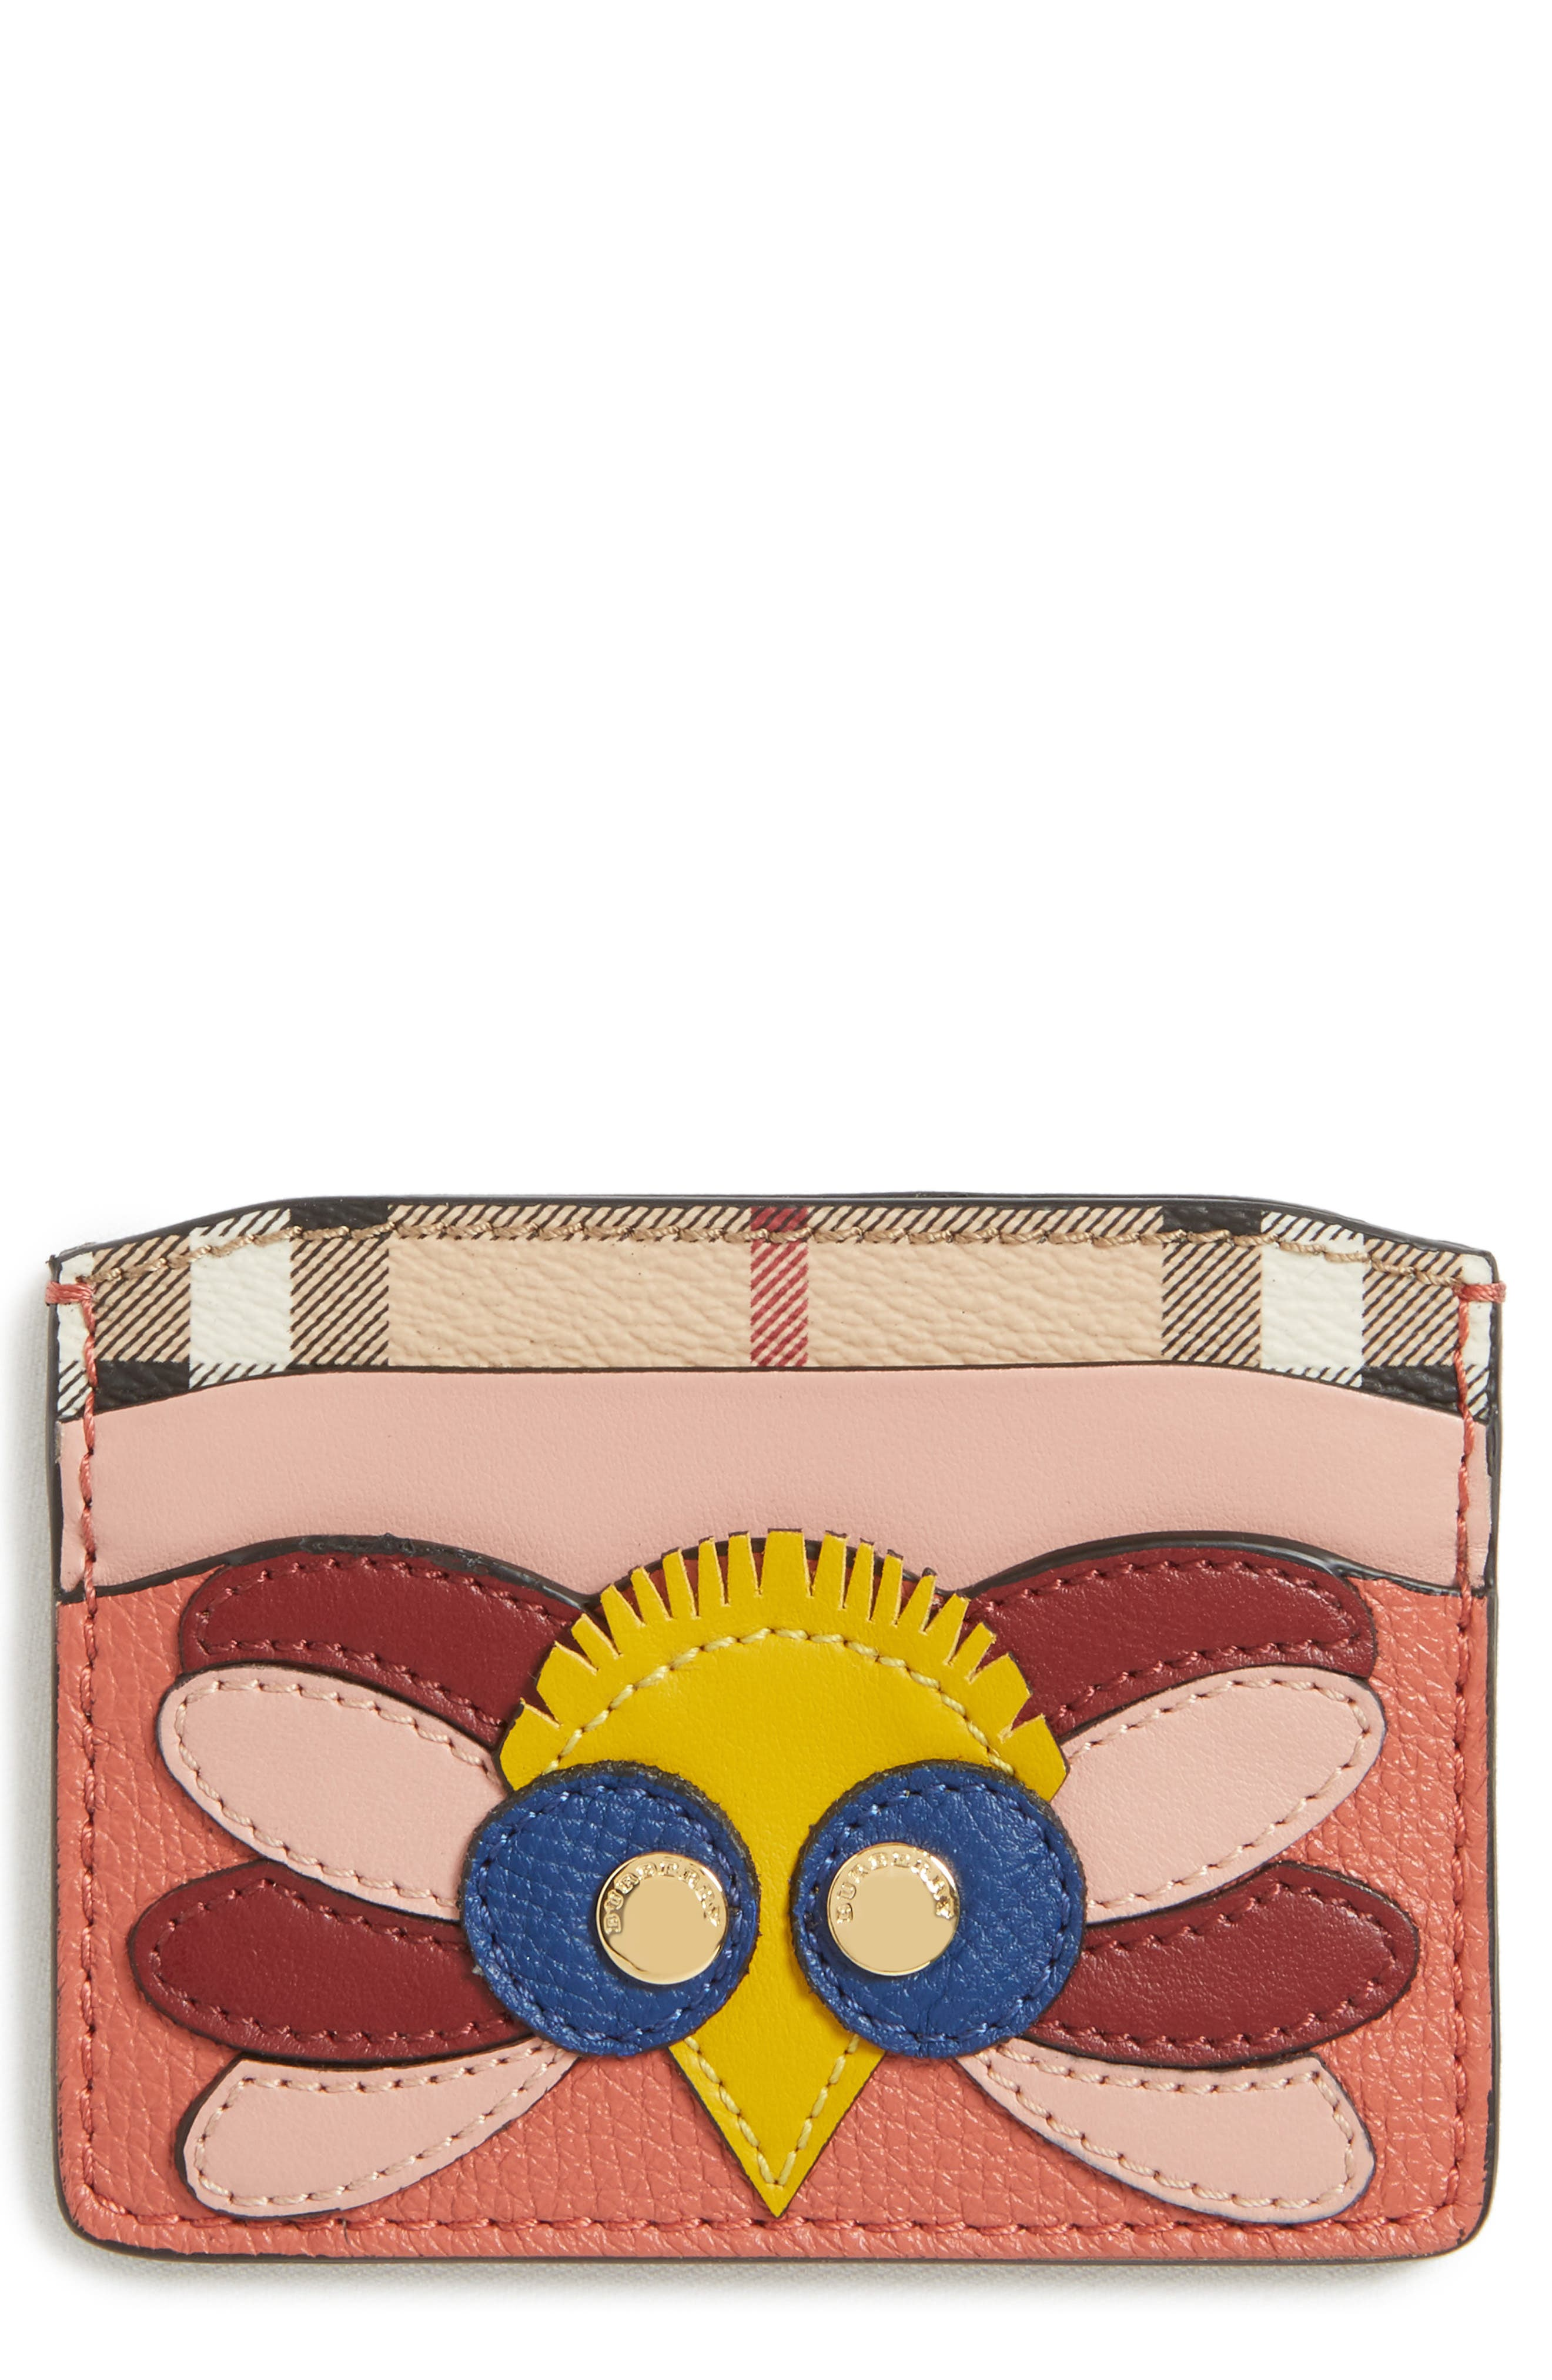 Izzy Beasts Owl Leather Card Case,                         Main,                         color, Cinnamon Red